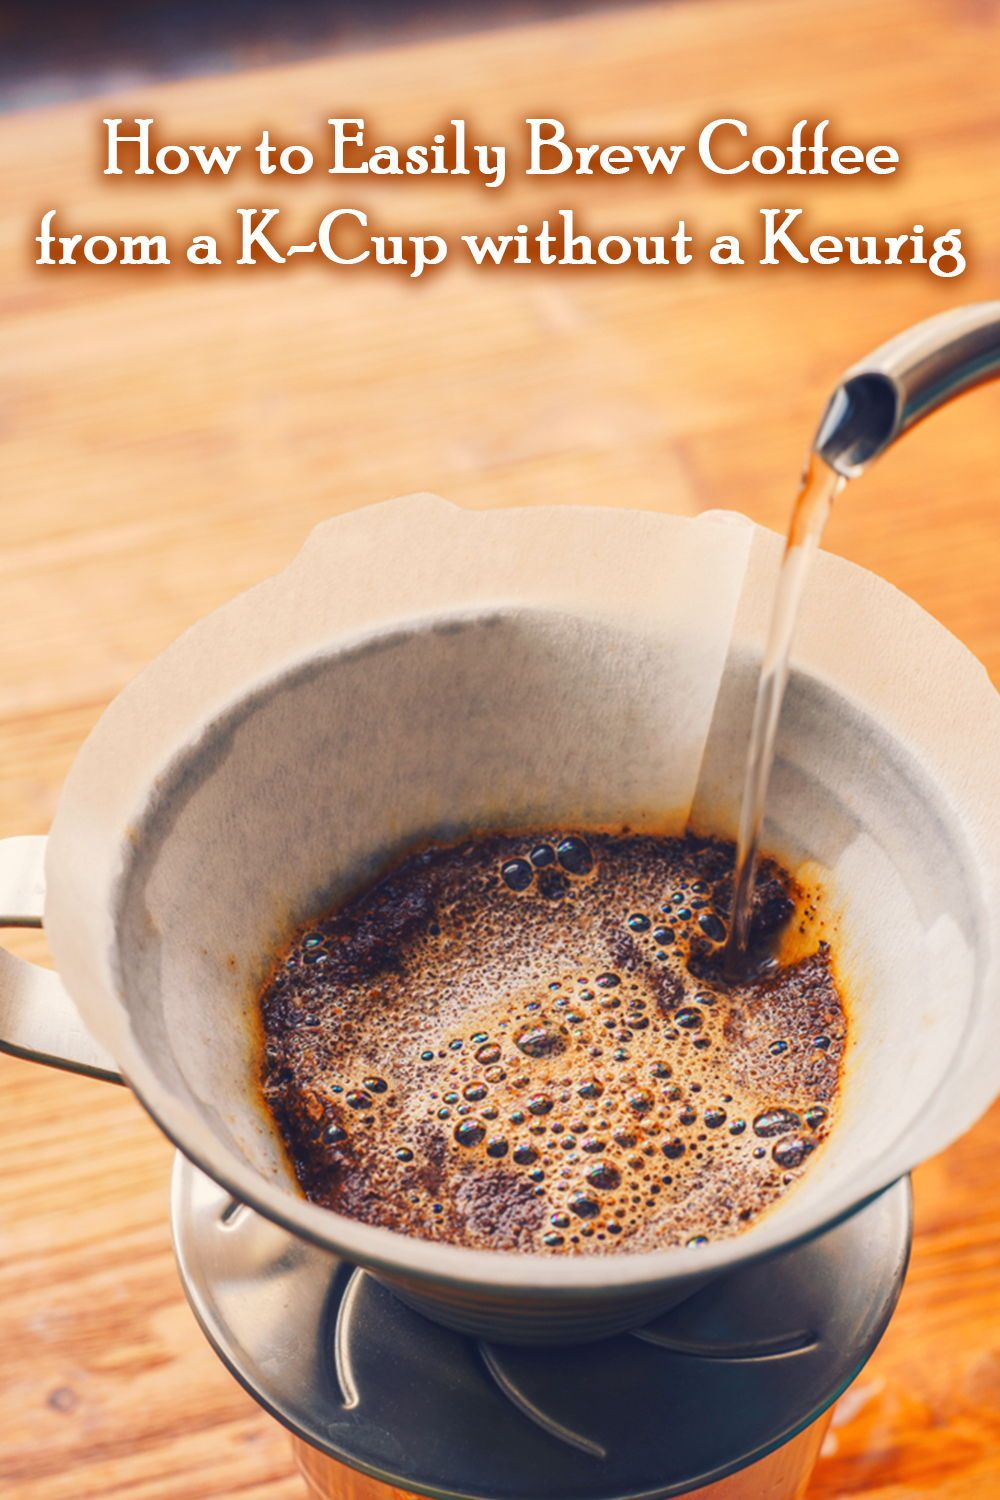 How to easily brew coffee from a kcup without a keurig